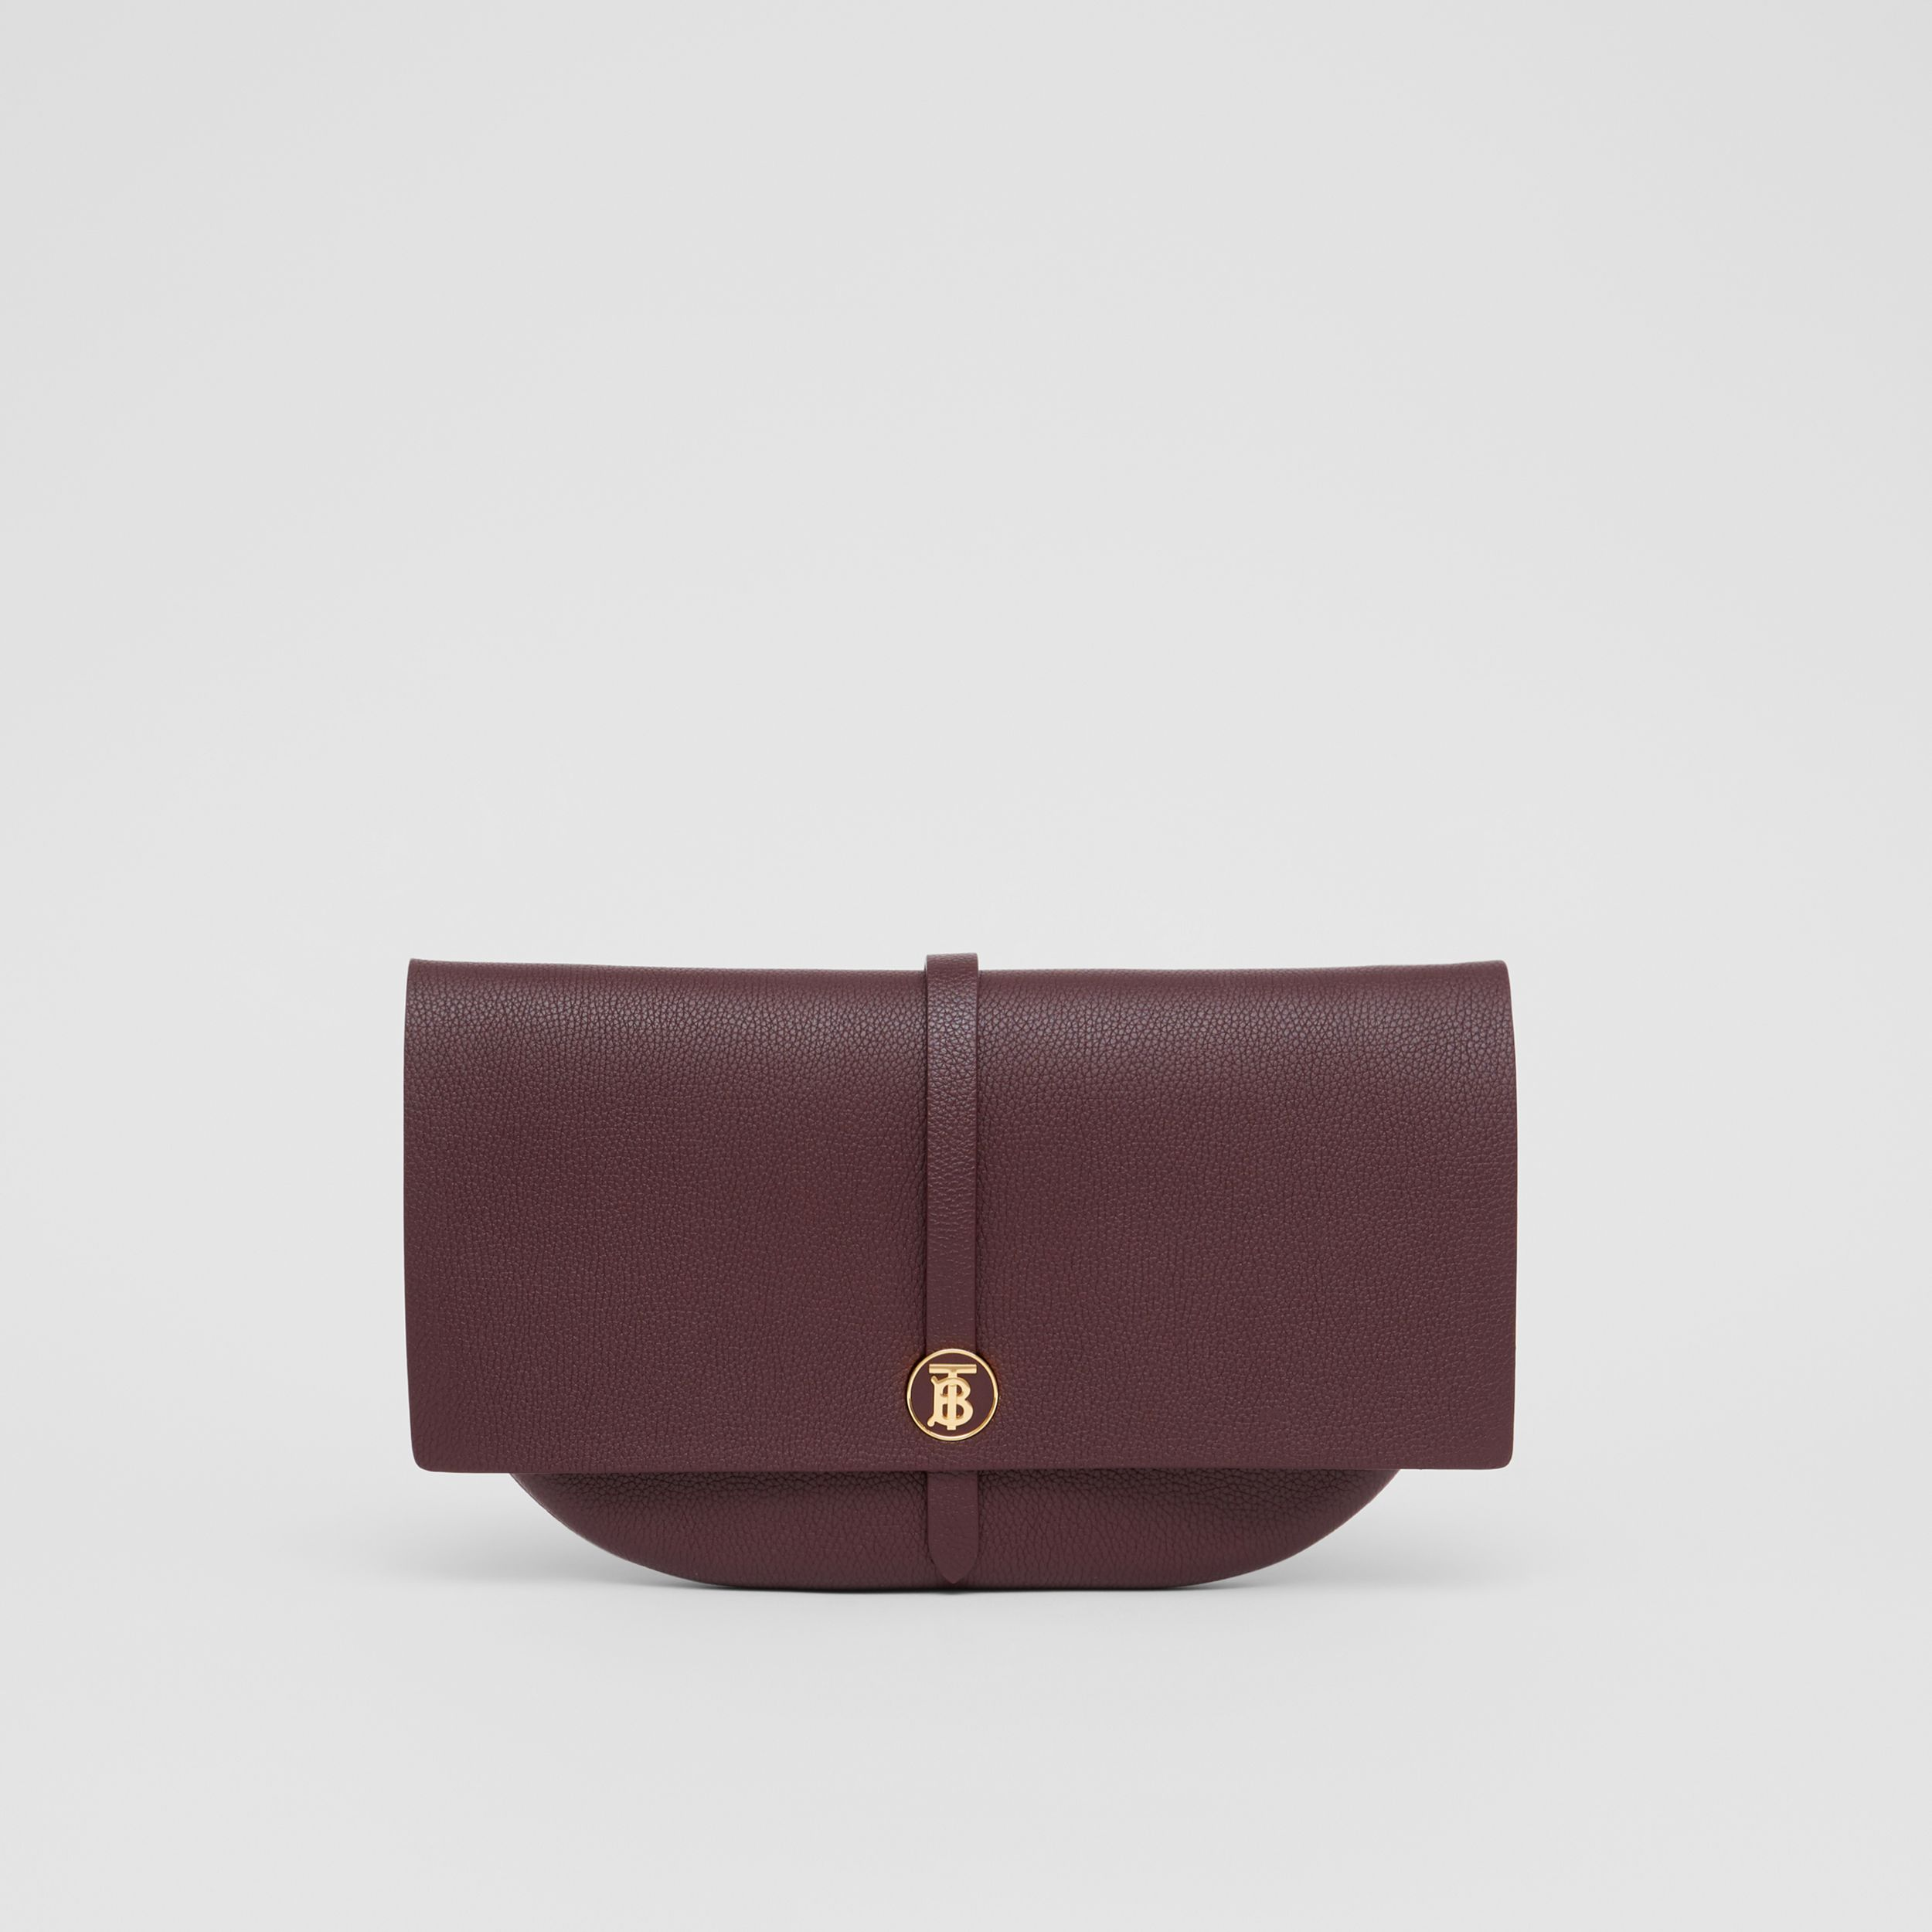 Grainy Leather Anne Clutch in Dark Walnut - Women | Burberry - 1